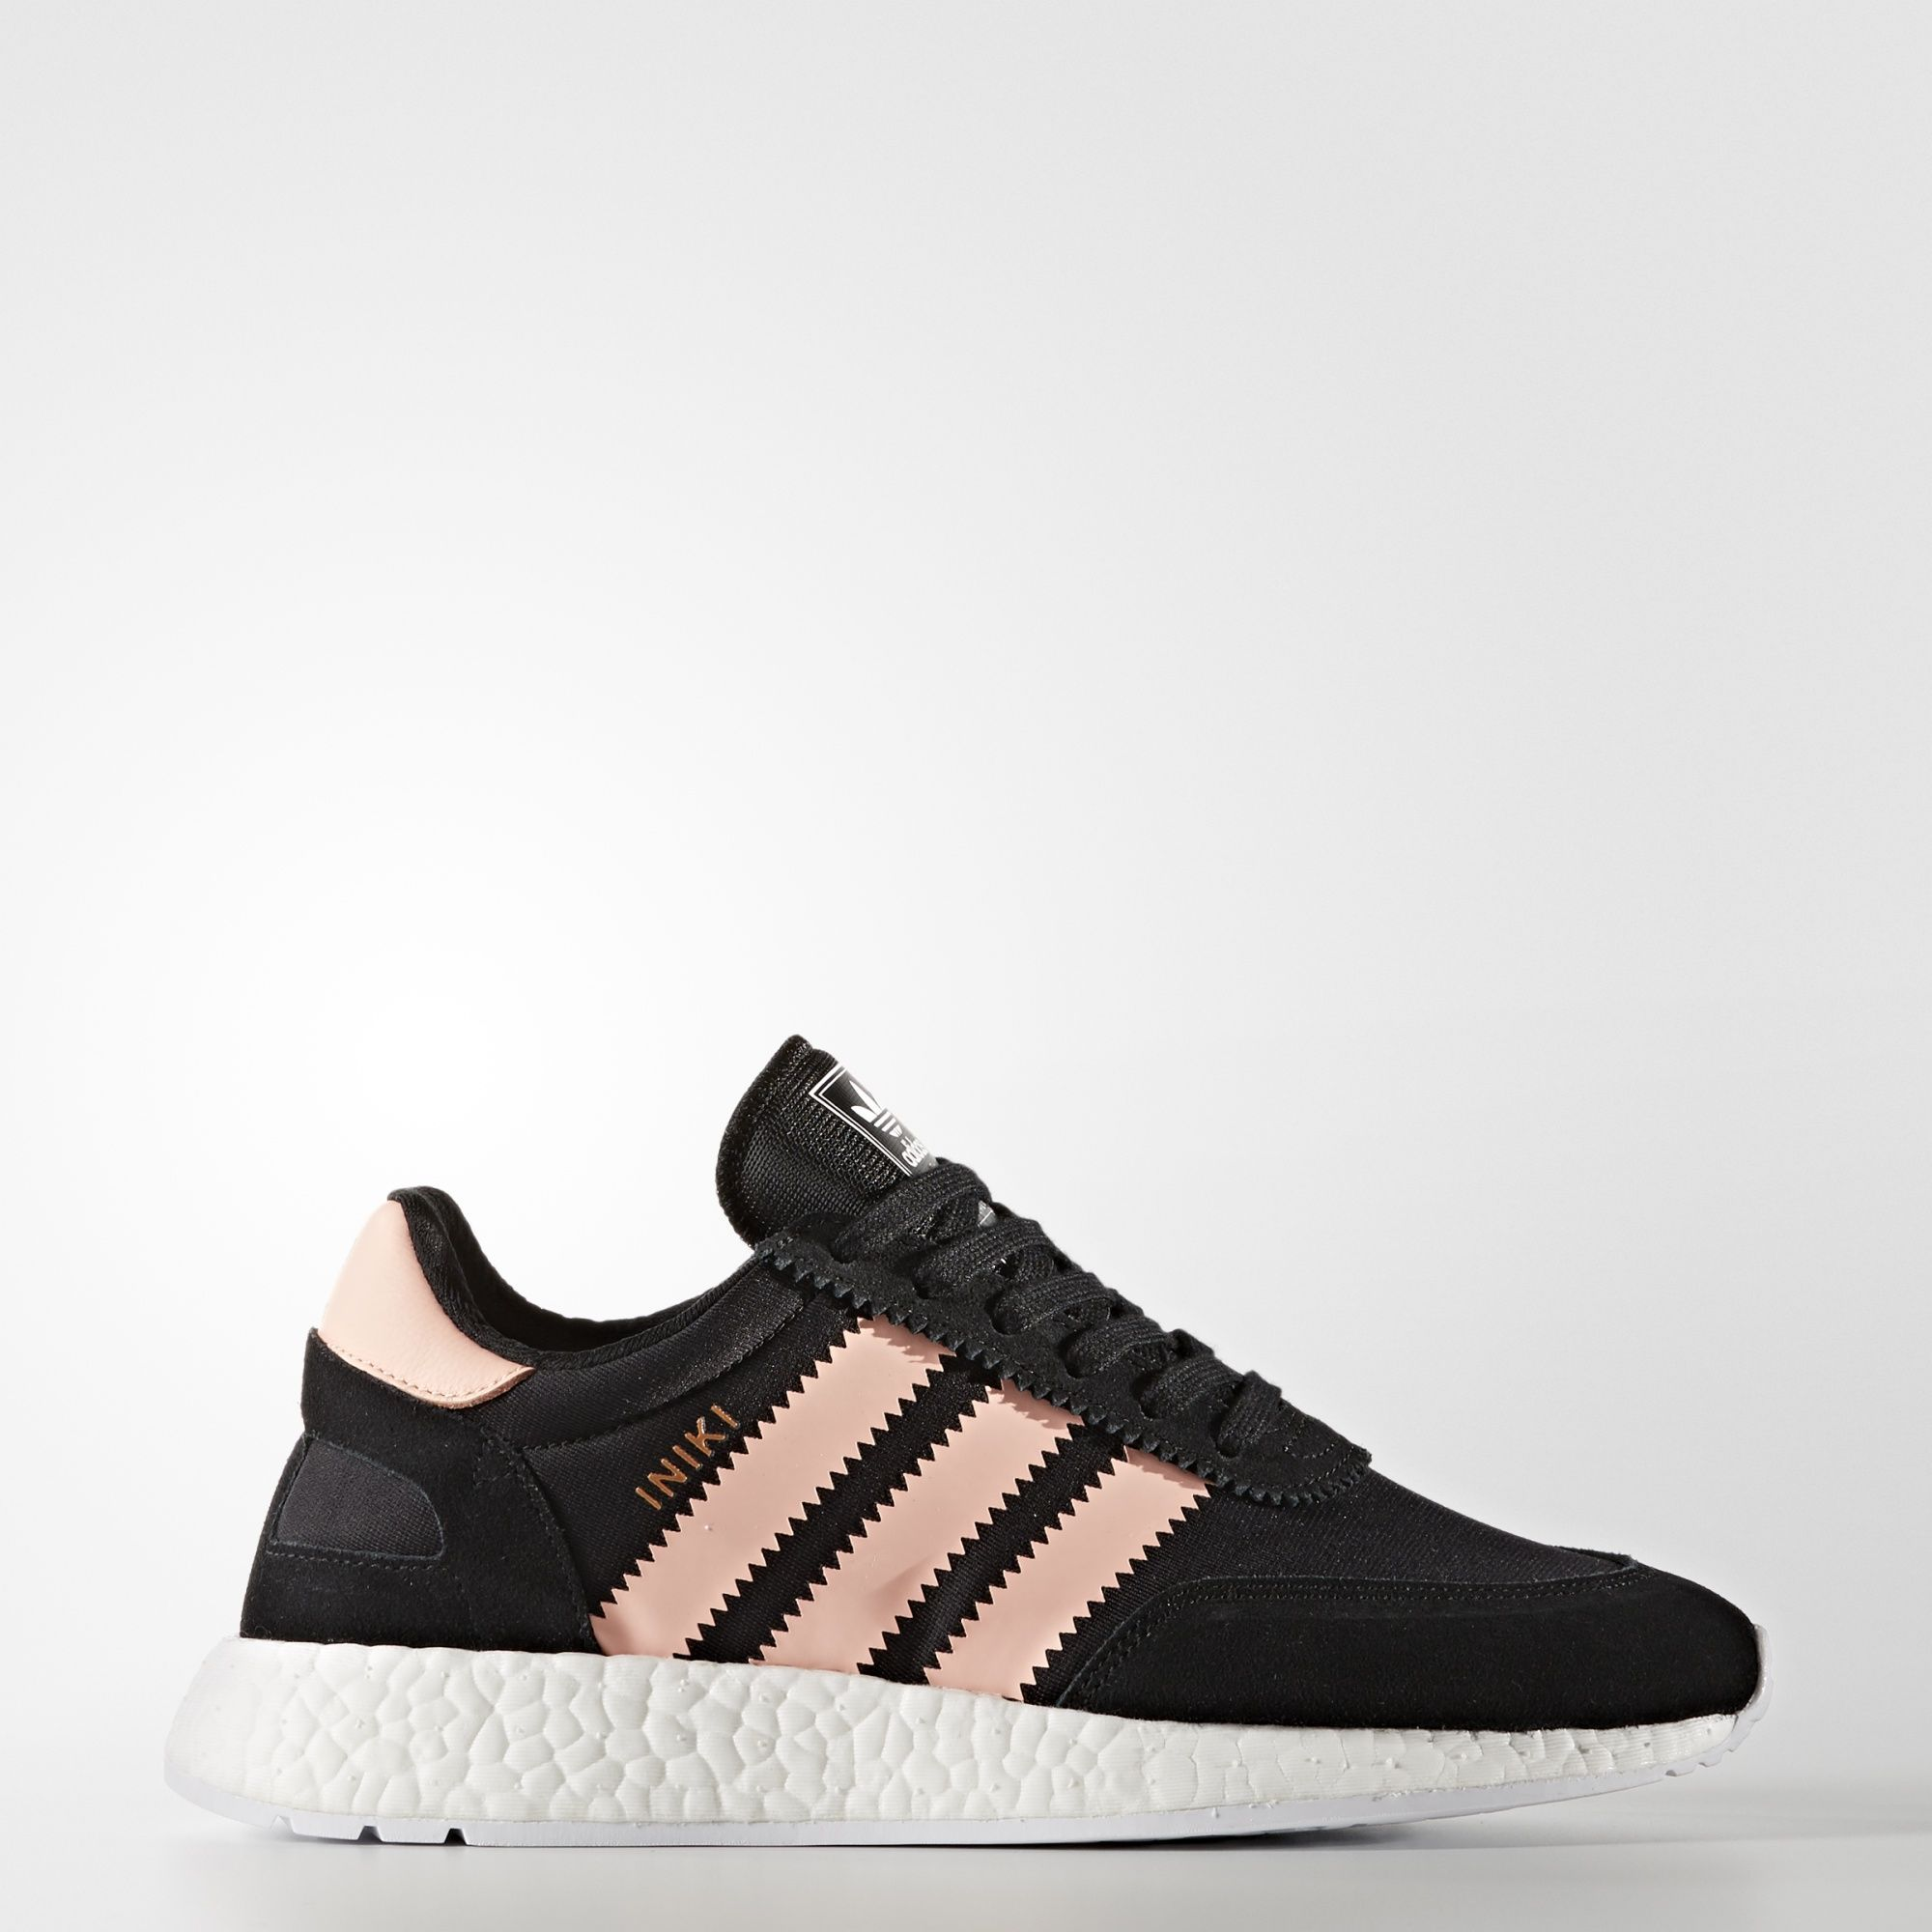 adidas - Iniki Runner ANY COLOUR size 7 15% off and free shipping first  order